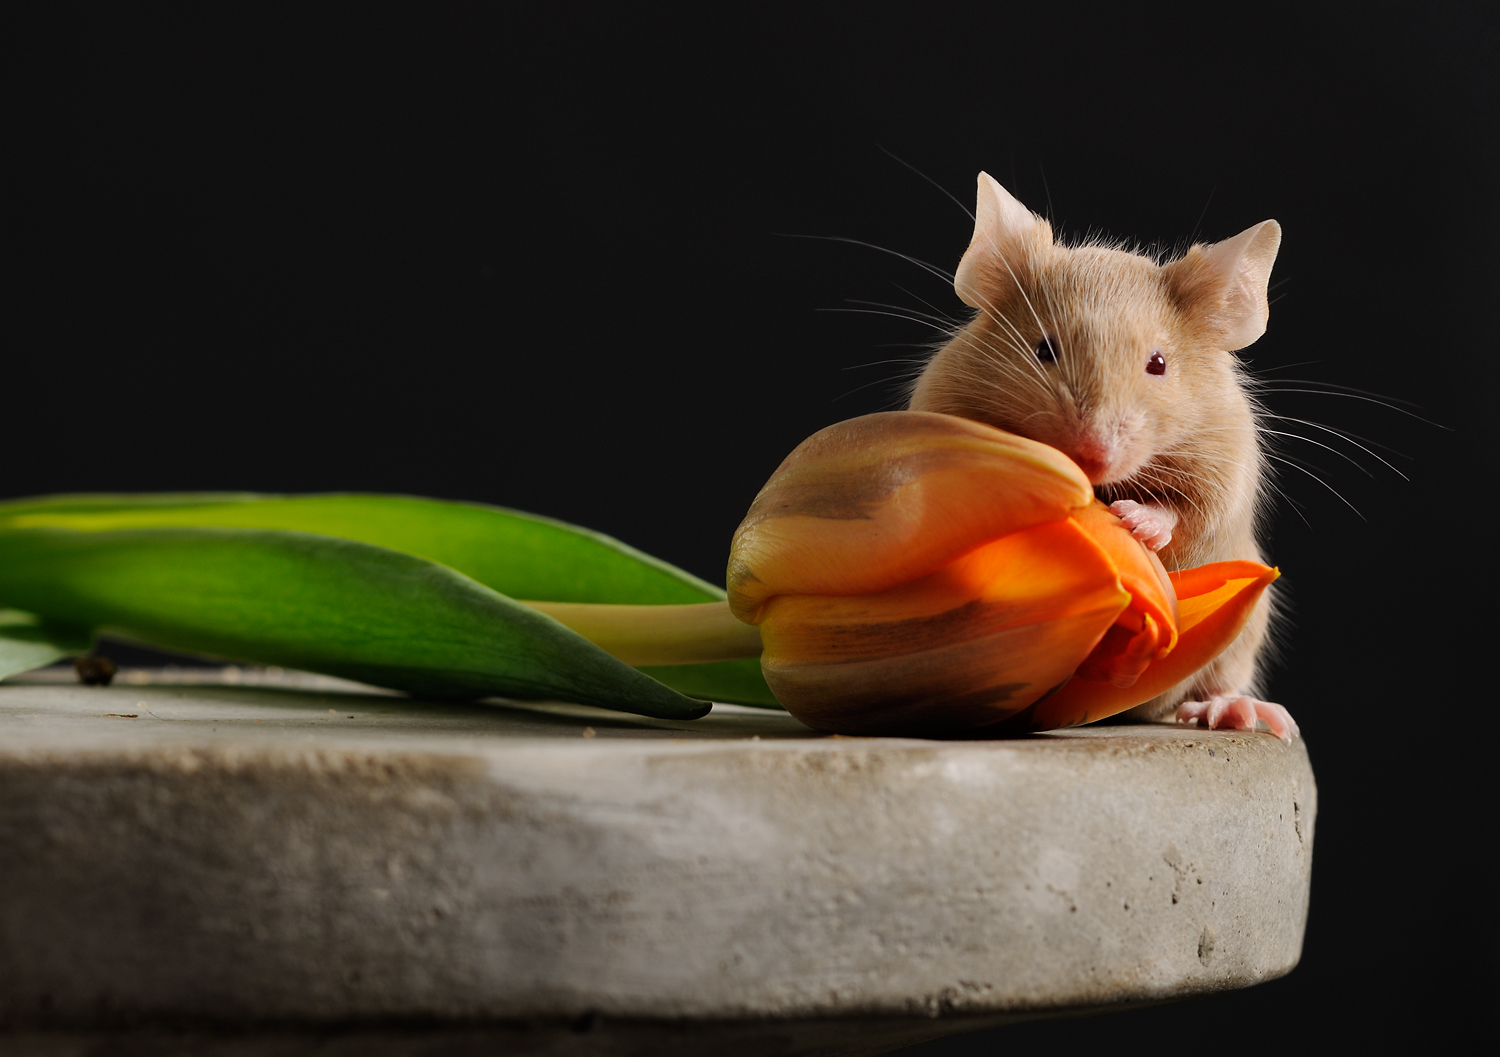 With a little patience, a mouse will pose - the tulip represents the Dutch company that breeds special mice